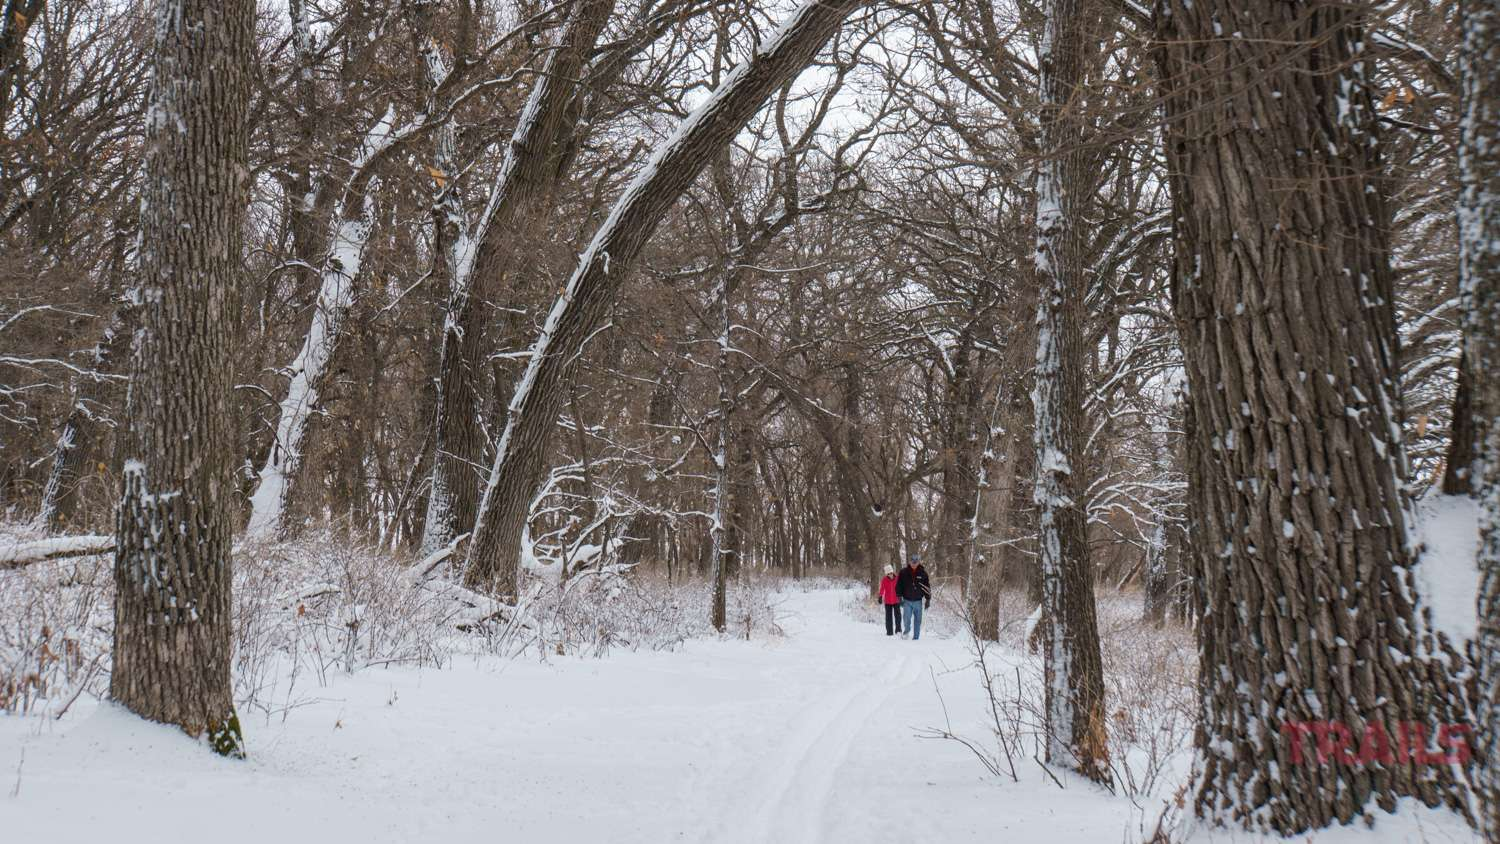 A man and woman walk through a snowy forest